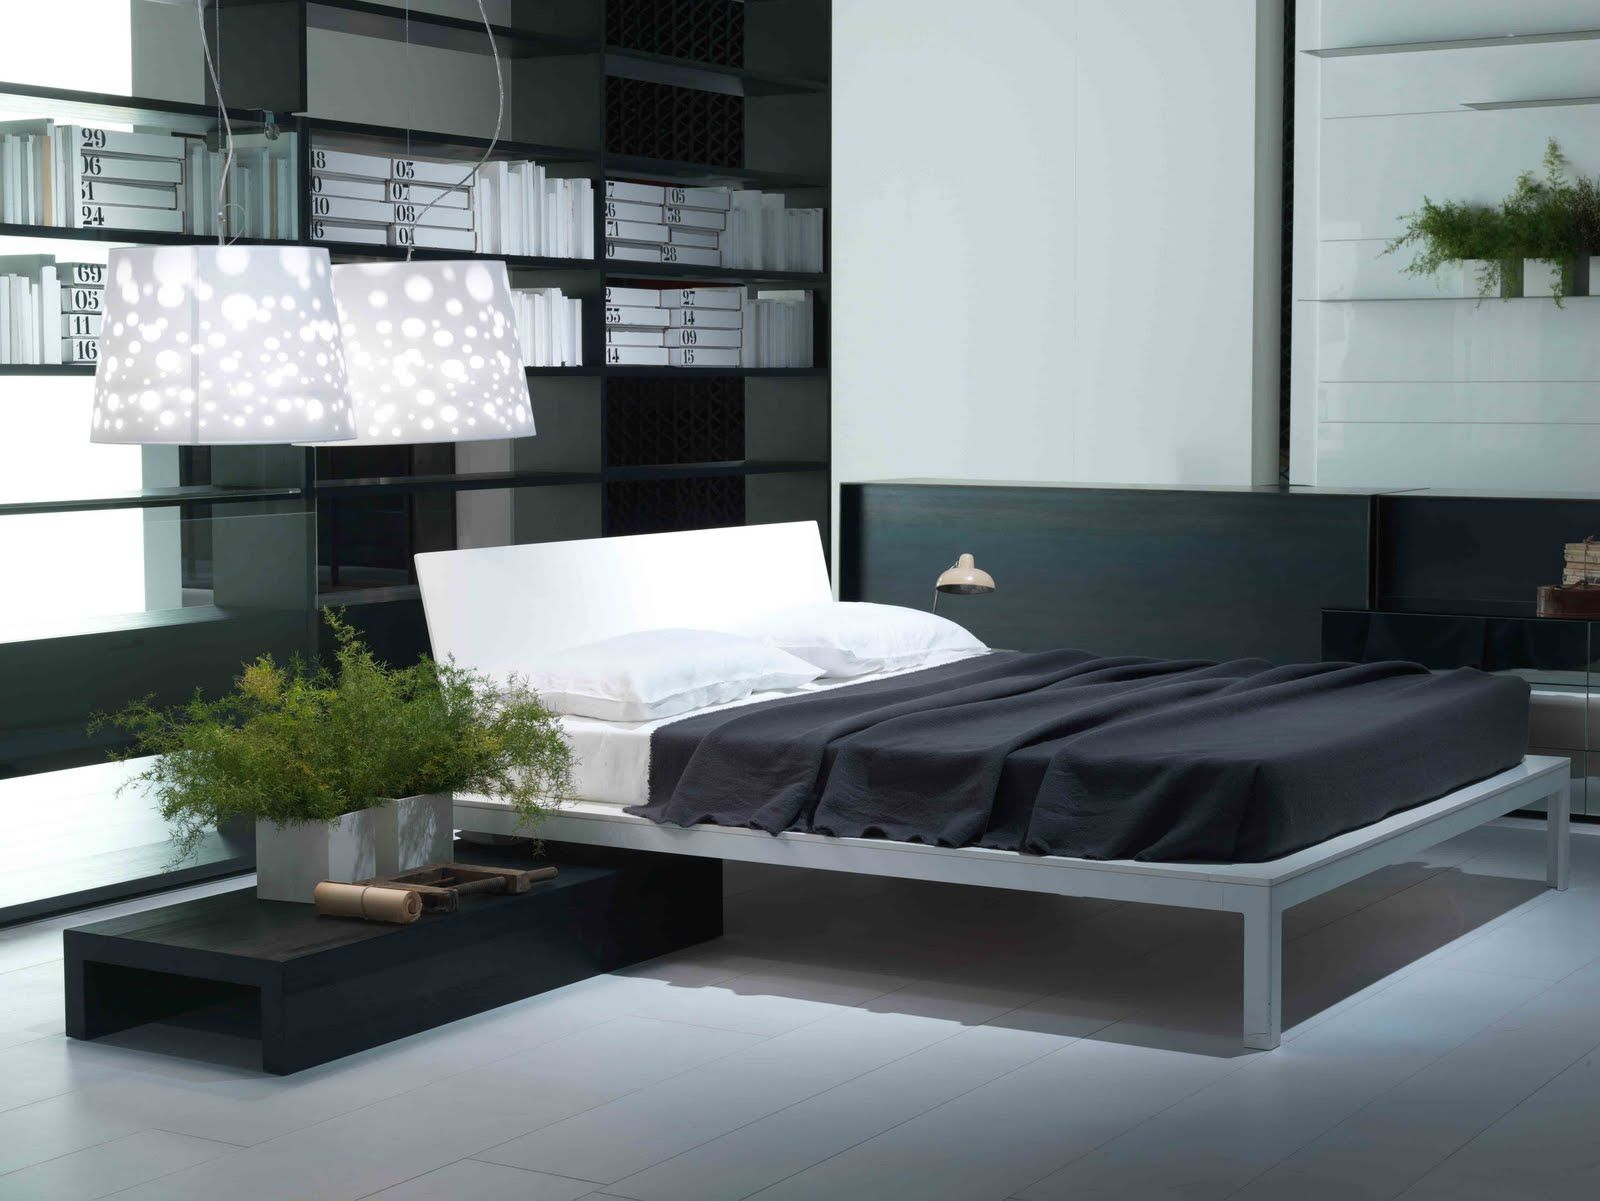 Modern contemporary furniture dallas home design with breathtaking grey iron bedframe within fabulous white leather headboard and comfy black comforter also